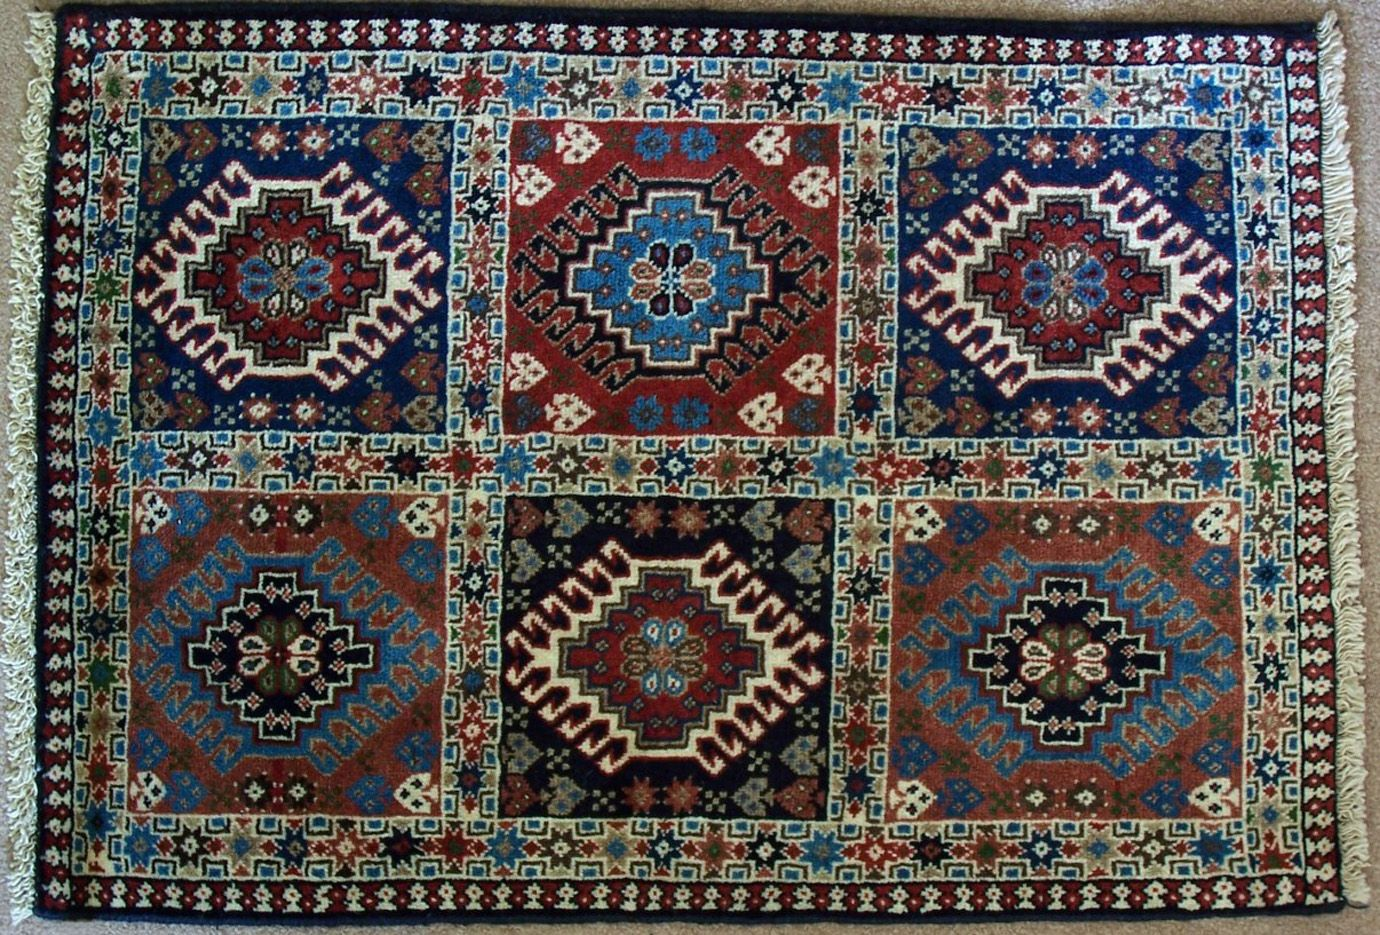 Persian Rug Prayer Carpets Embroidery Rugs Carpet